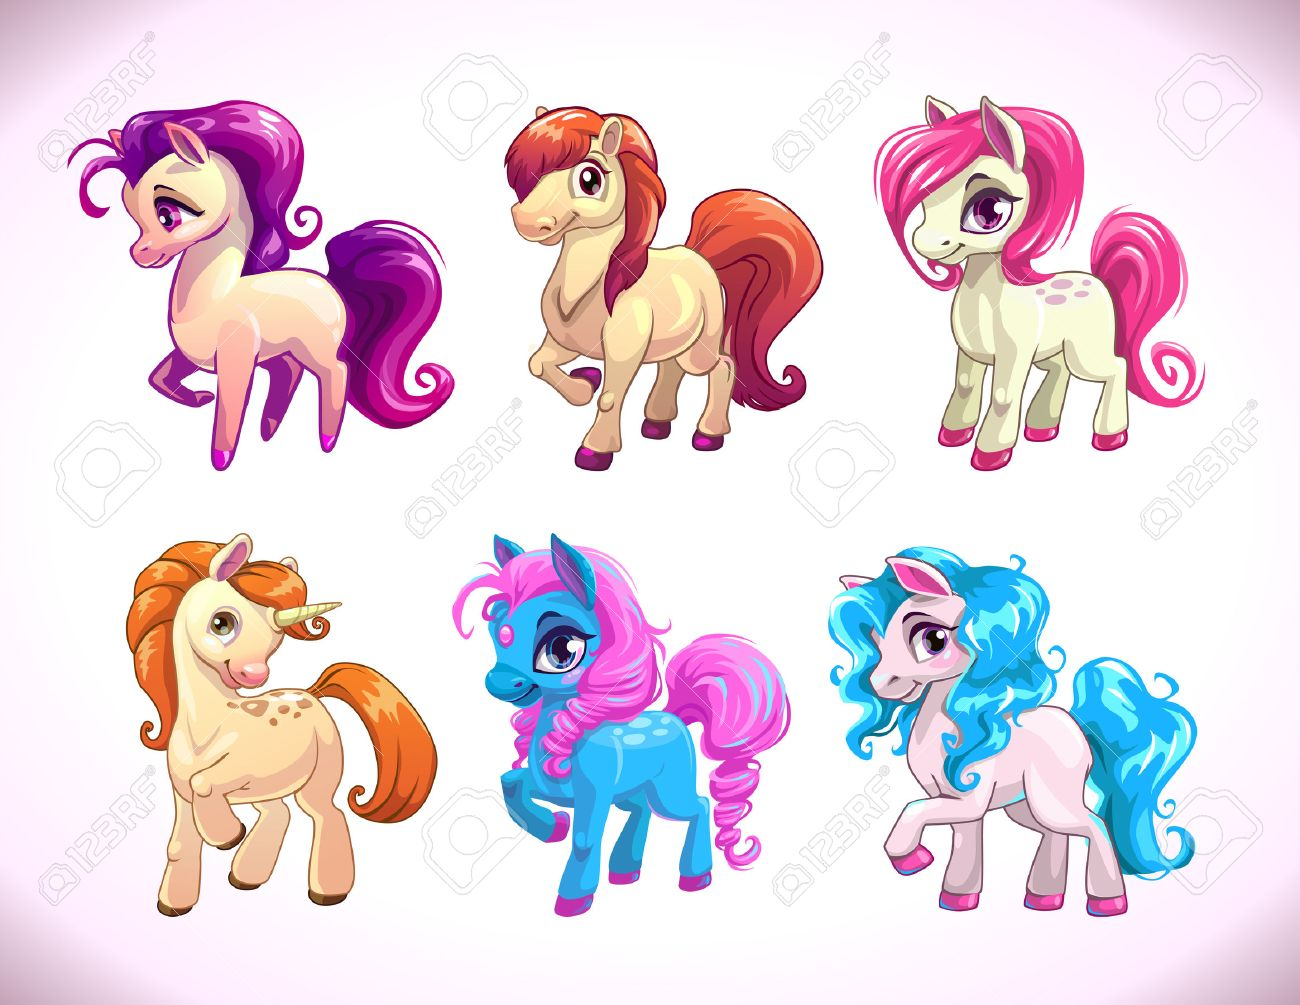 Funny cartoon farm pony characters, girlish beautiful baby horses icons set, illustration isolated on white, cute prints for kids t shirt design - 56096790